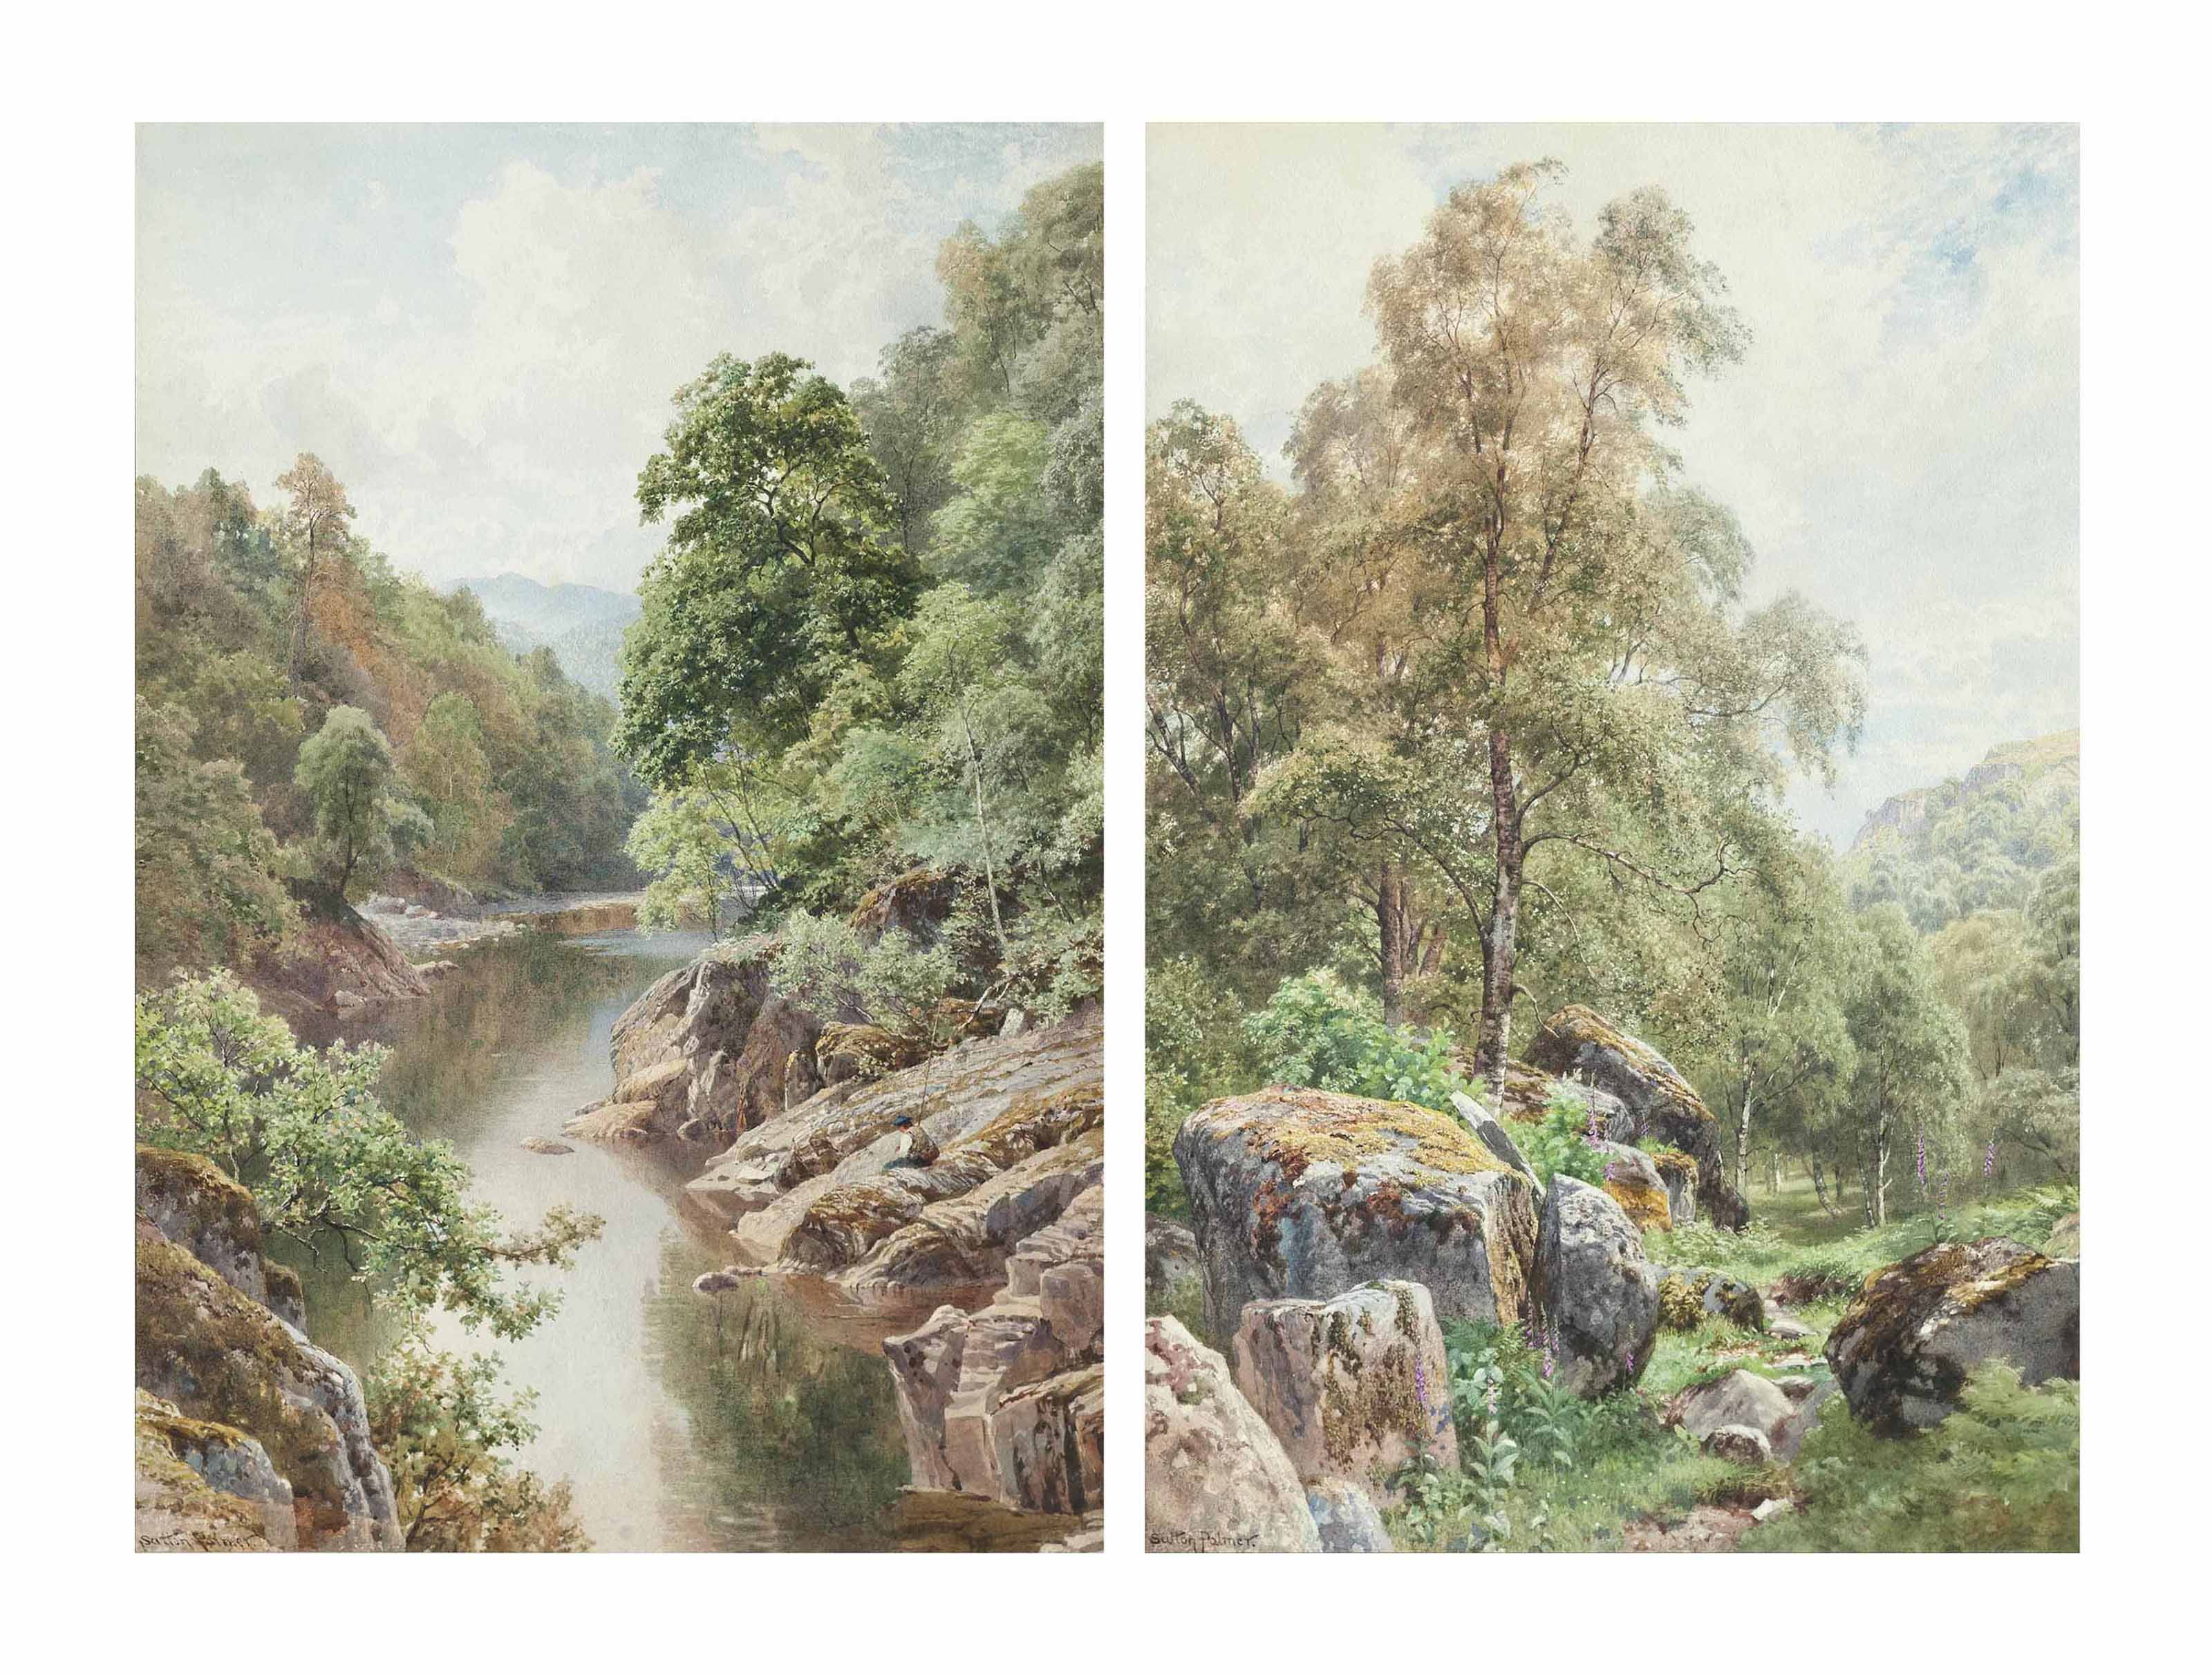 The river at Killiecrankie; and Birches and boulders, North Wales